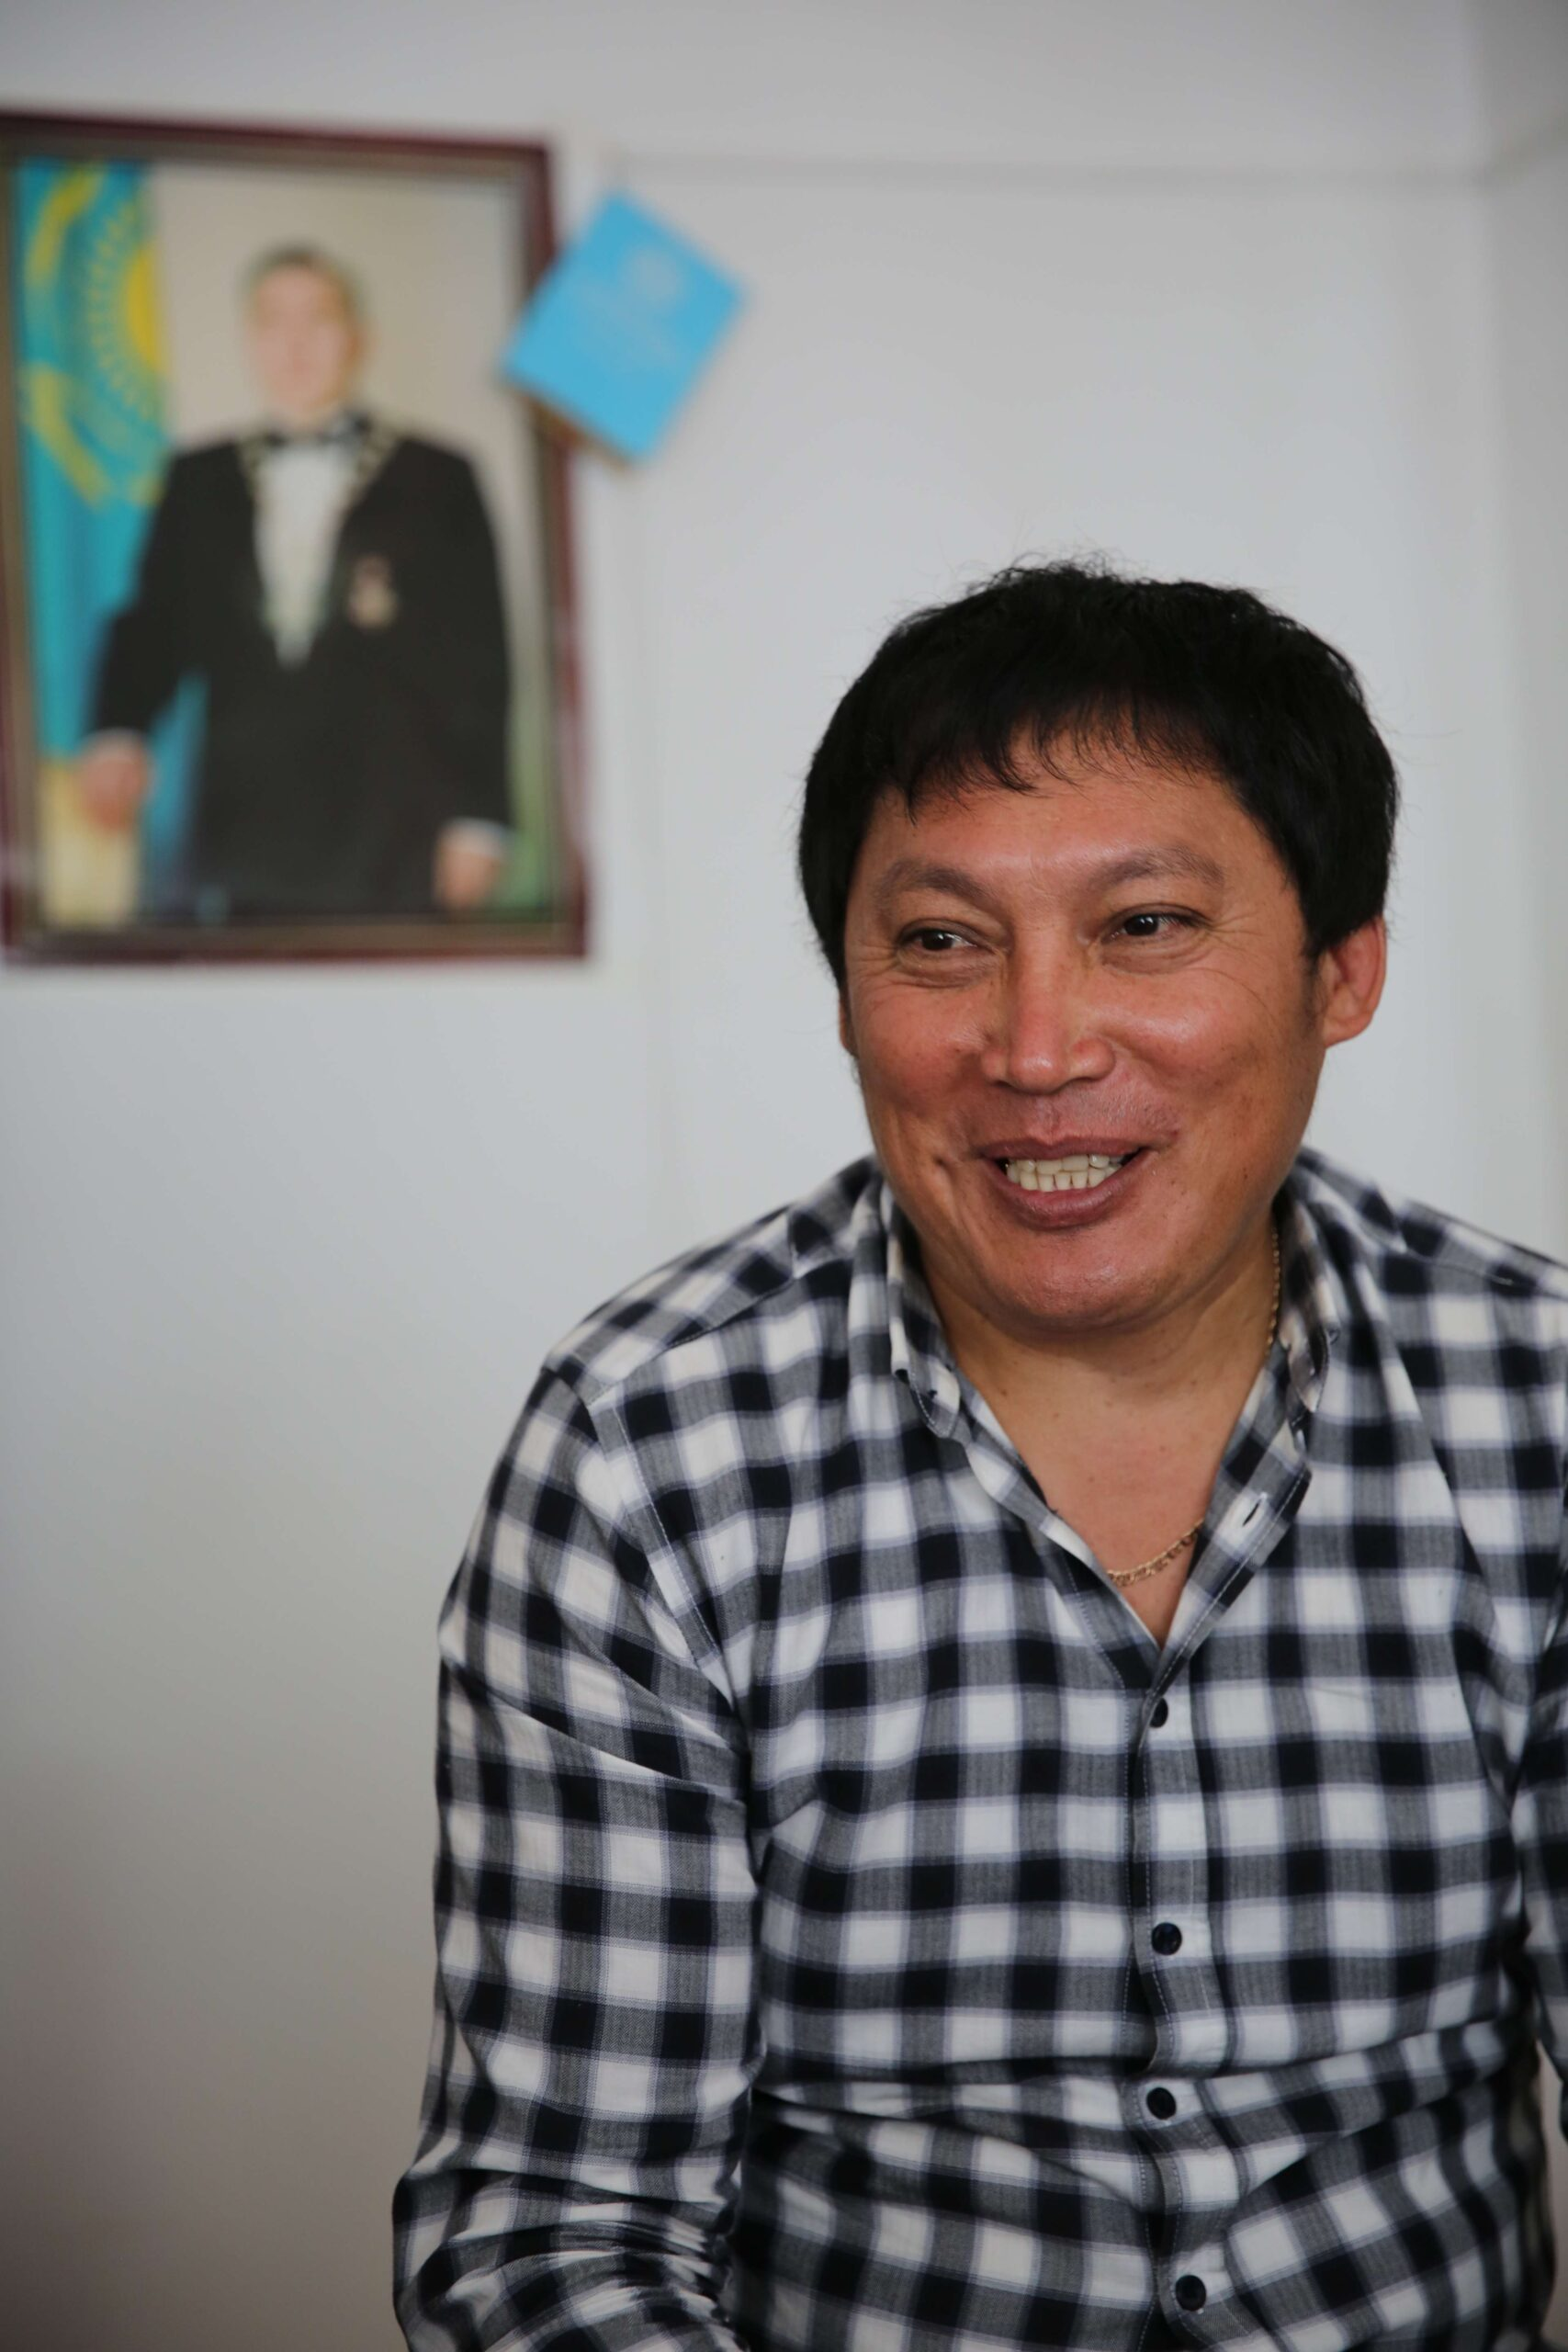 KAZAKHSTAN | NOV. 23, 2020 — Pastor Jailed